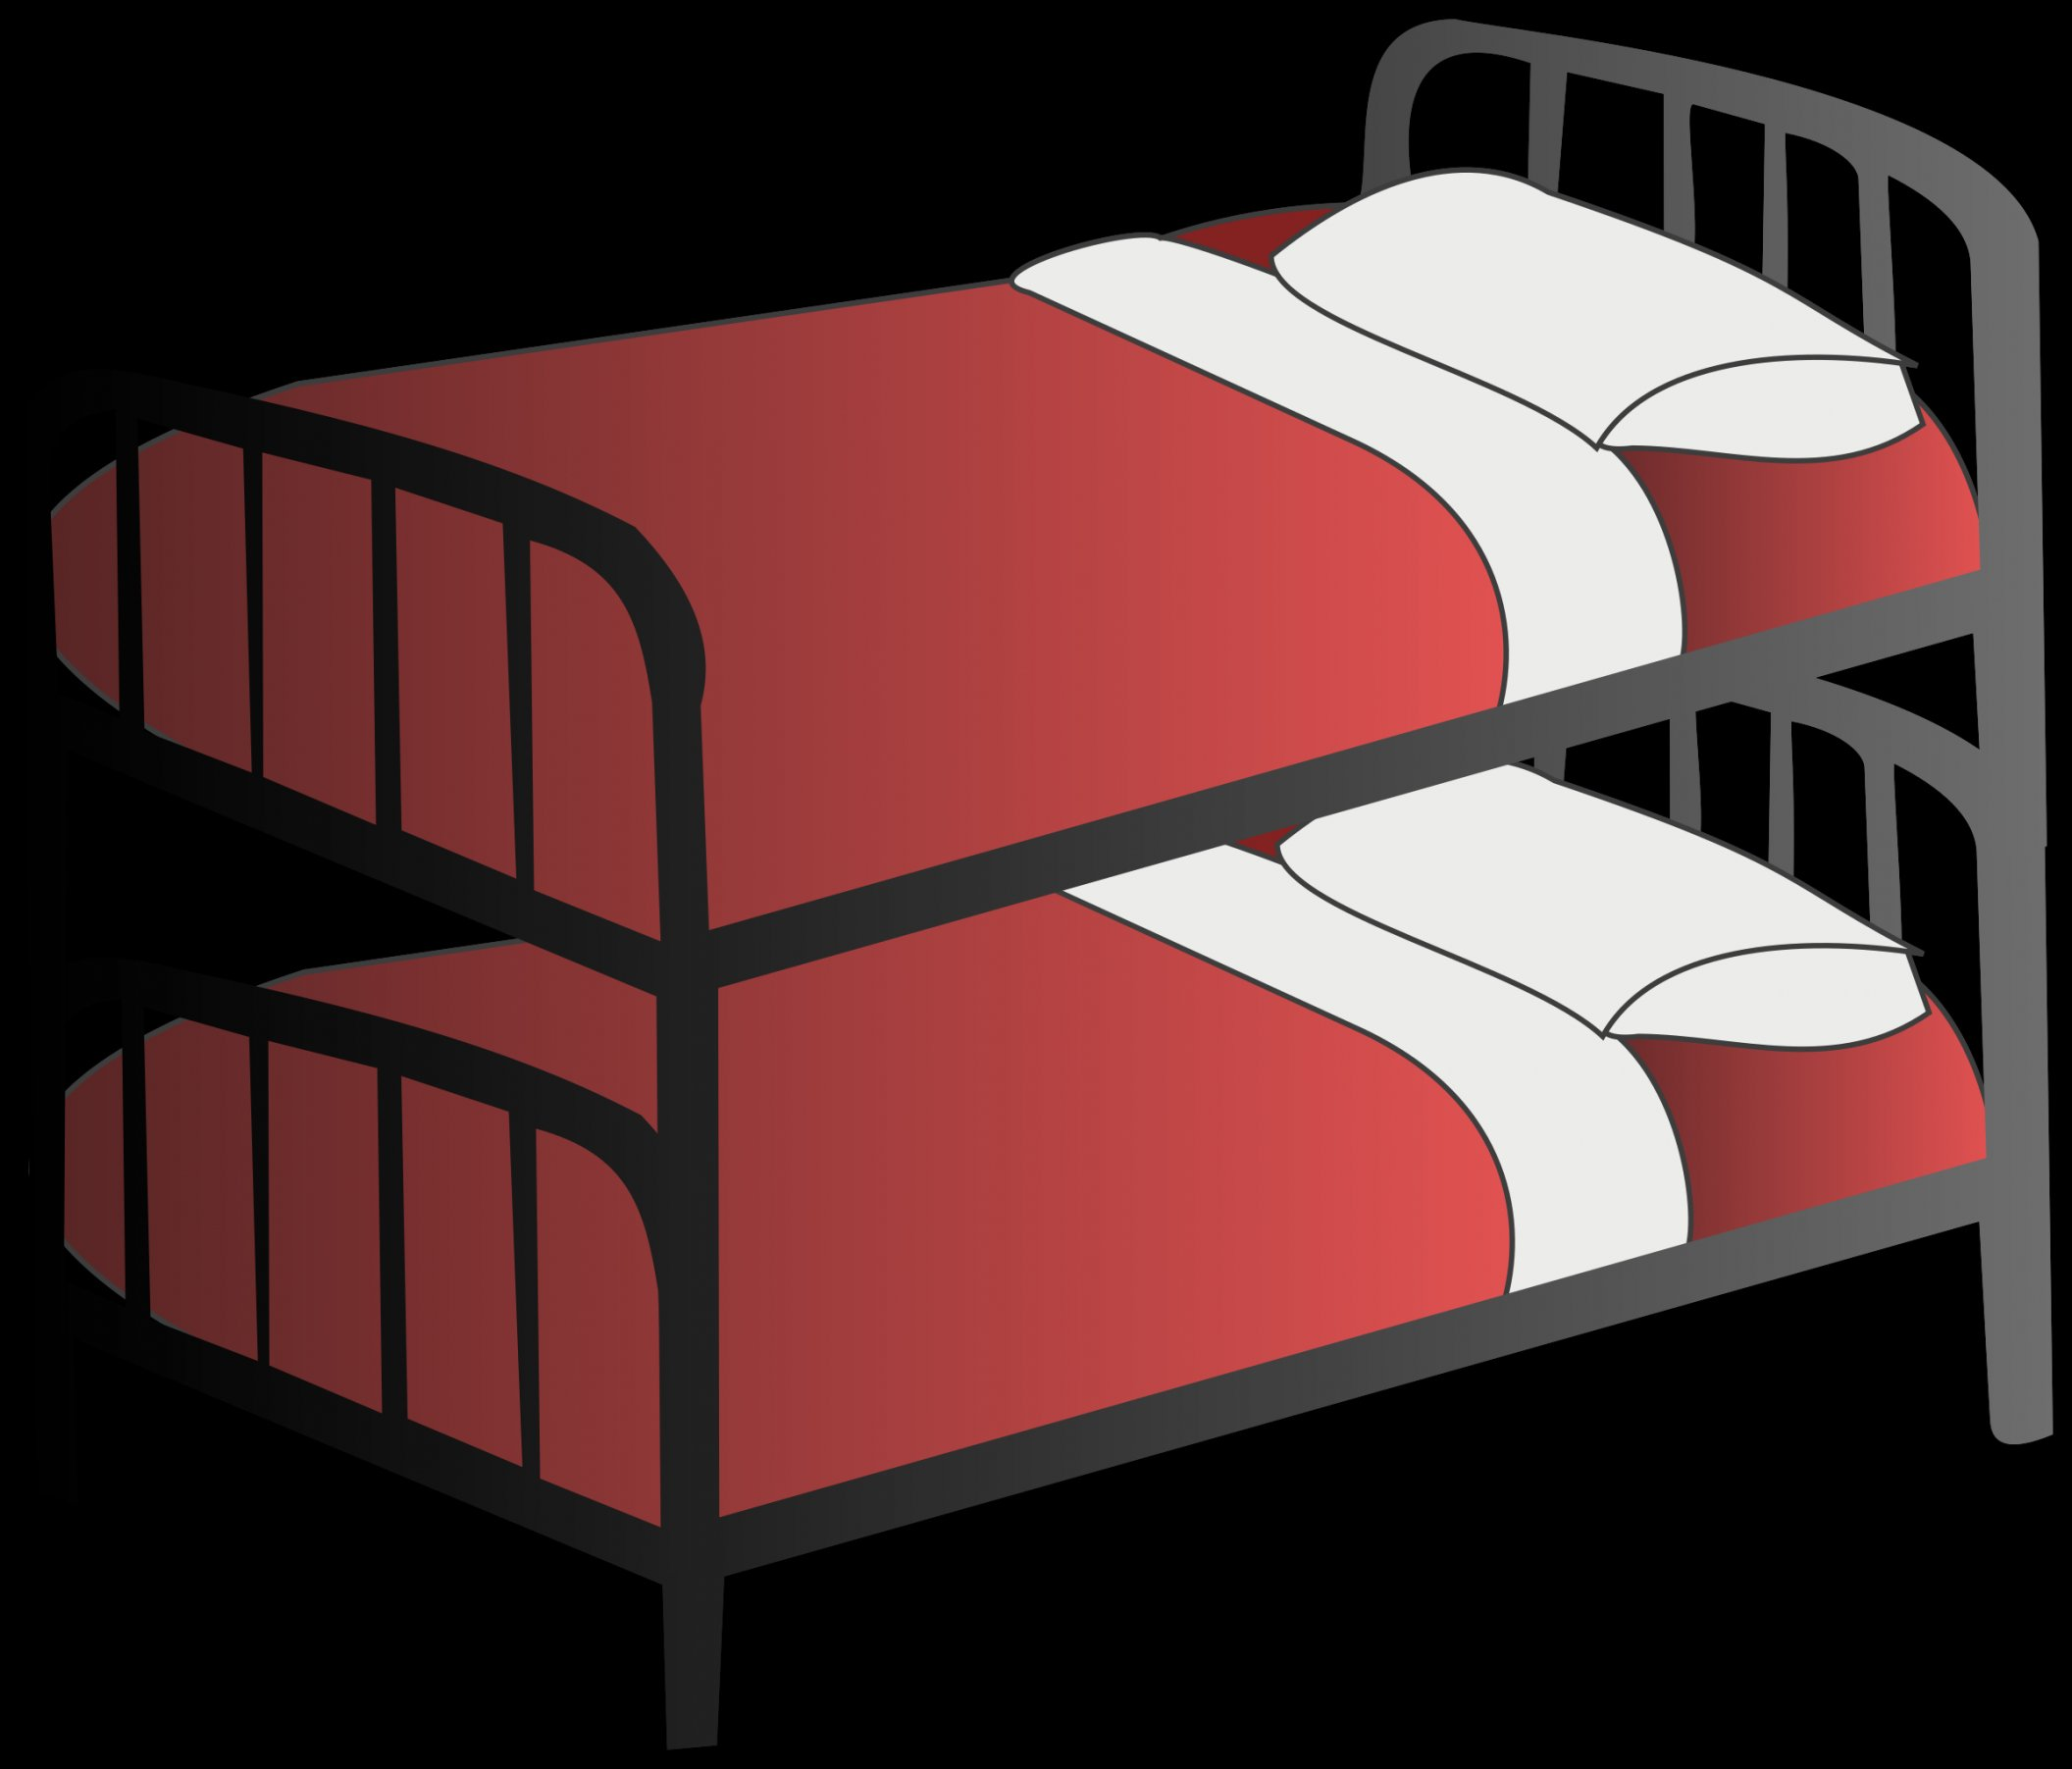 bed clipart bunk bed